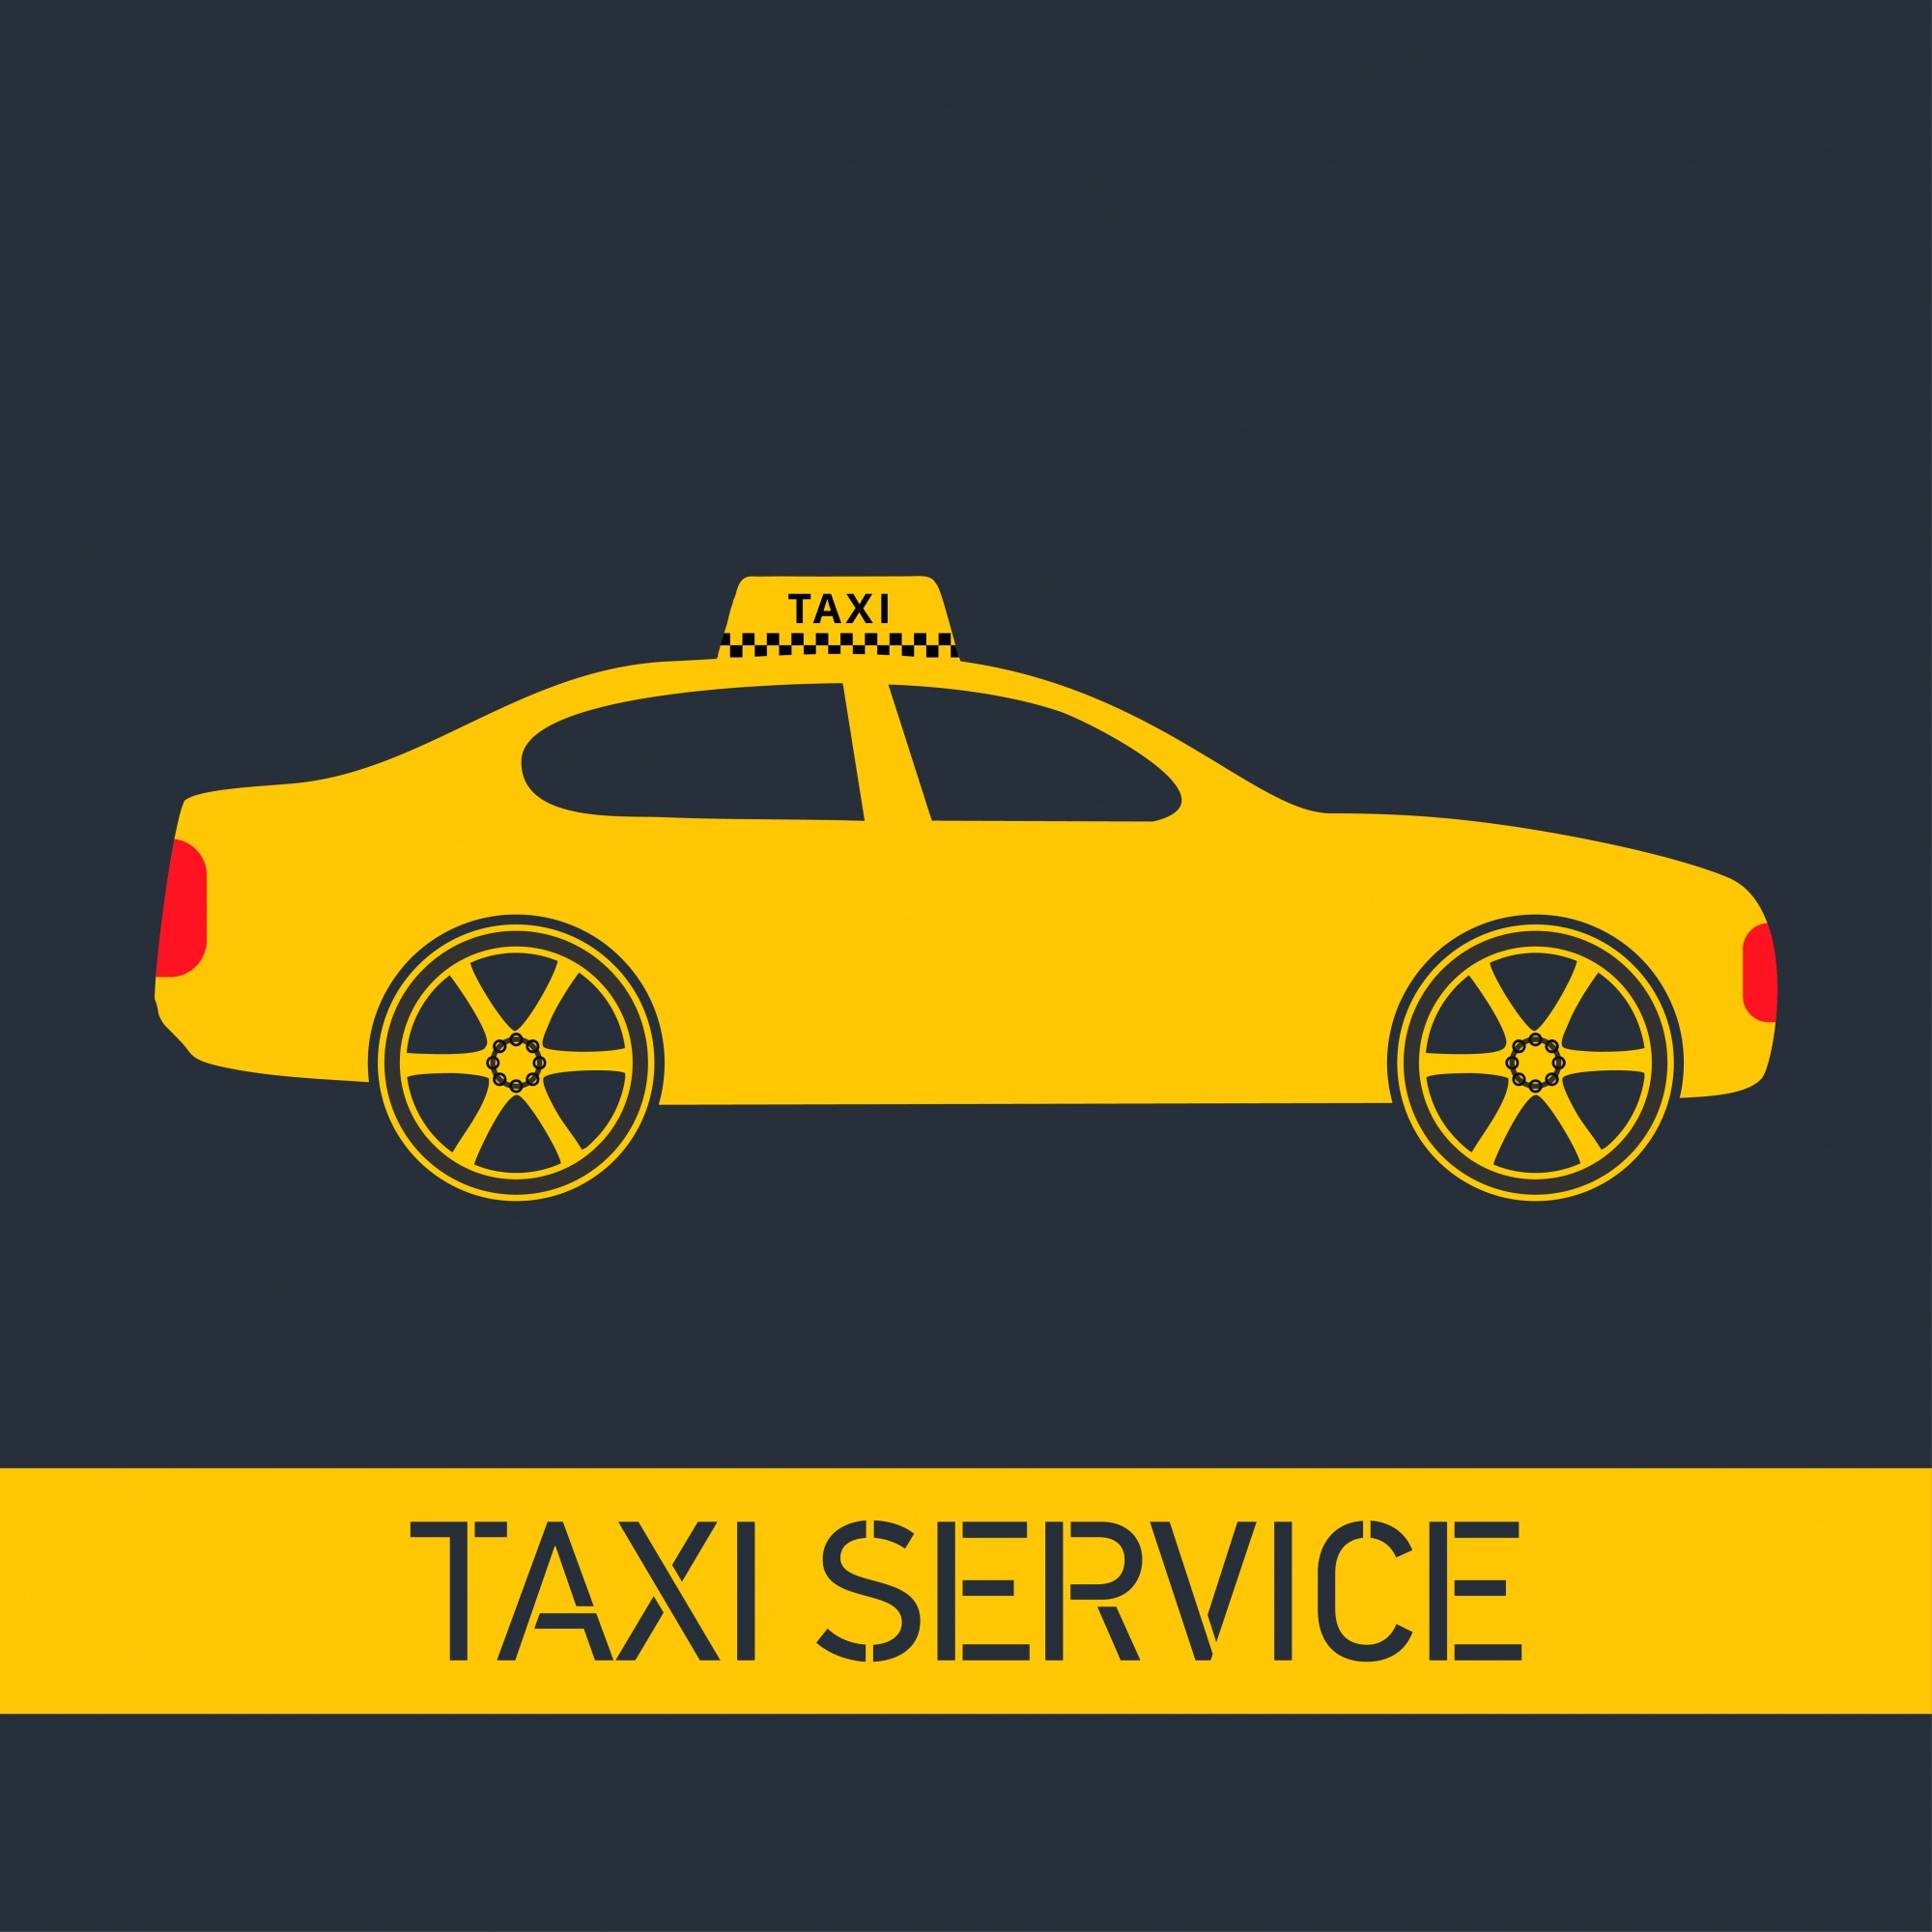 Taxi Icon Taxi Service Yellow Taxi Car Gray Background